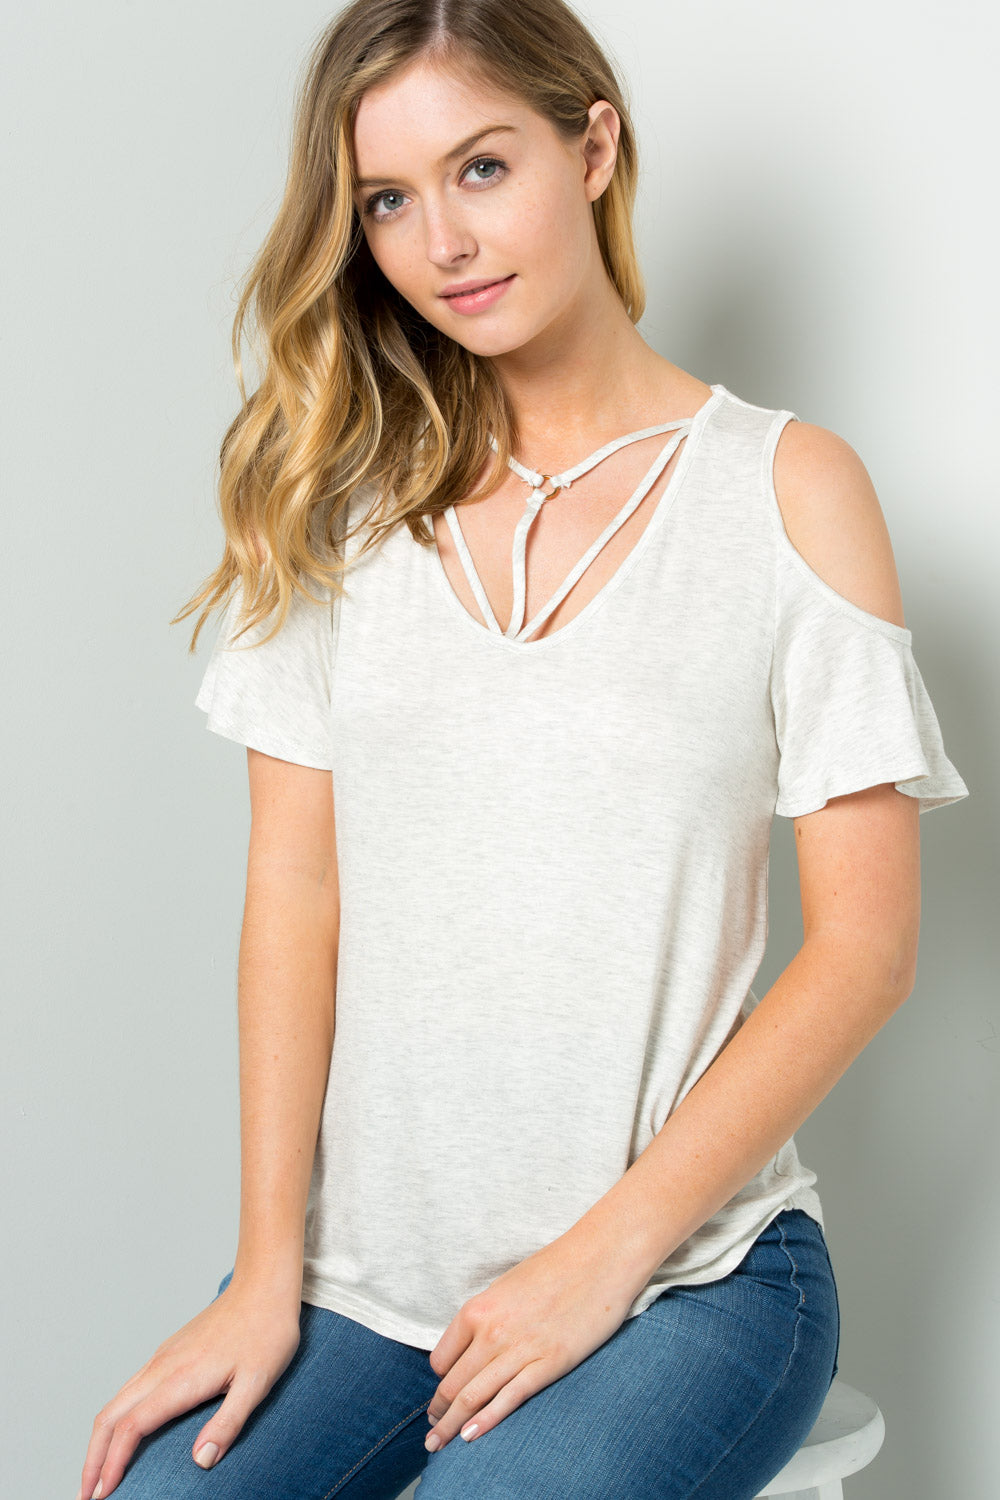 Criss Cross Basic Top